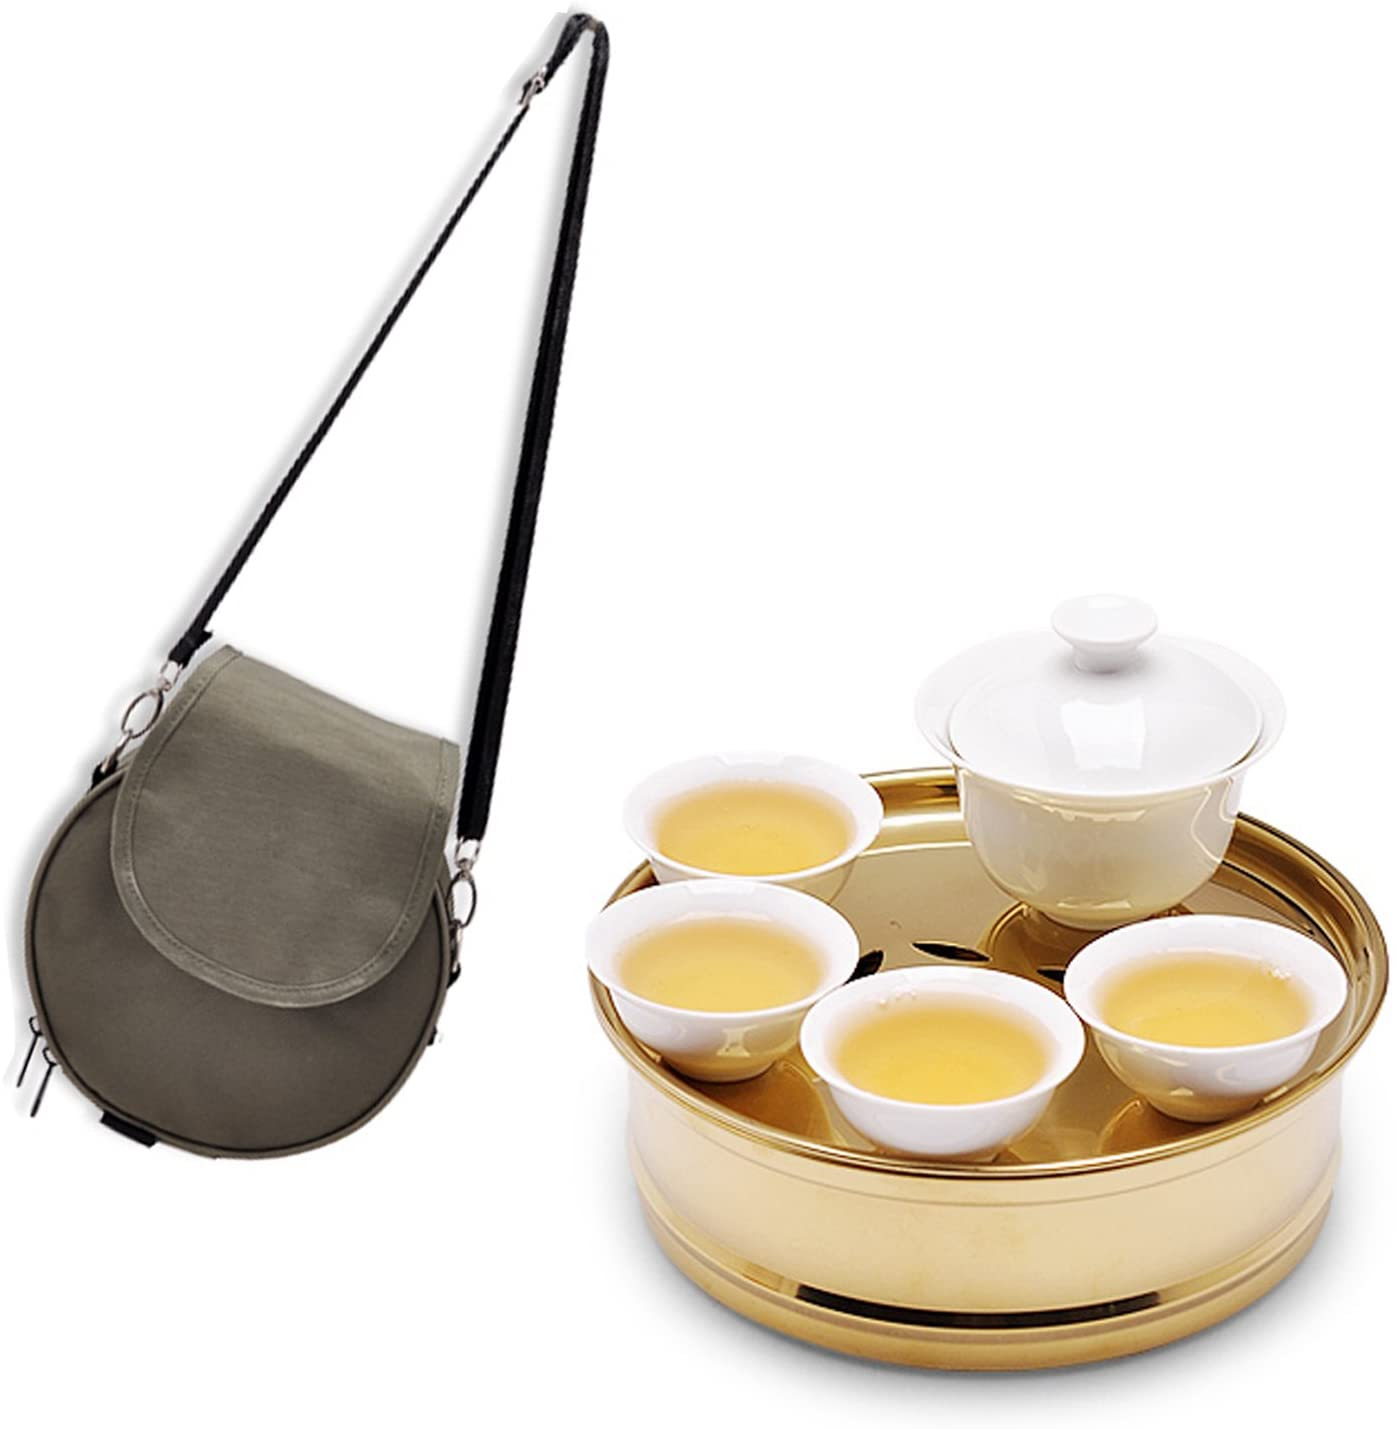 Chinese Portable travel Tea set for kungfu tea.Stainless steel Serving Tray .Vintage Style